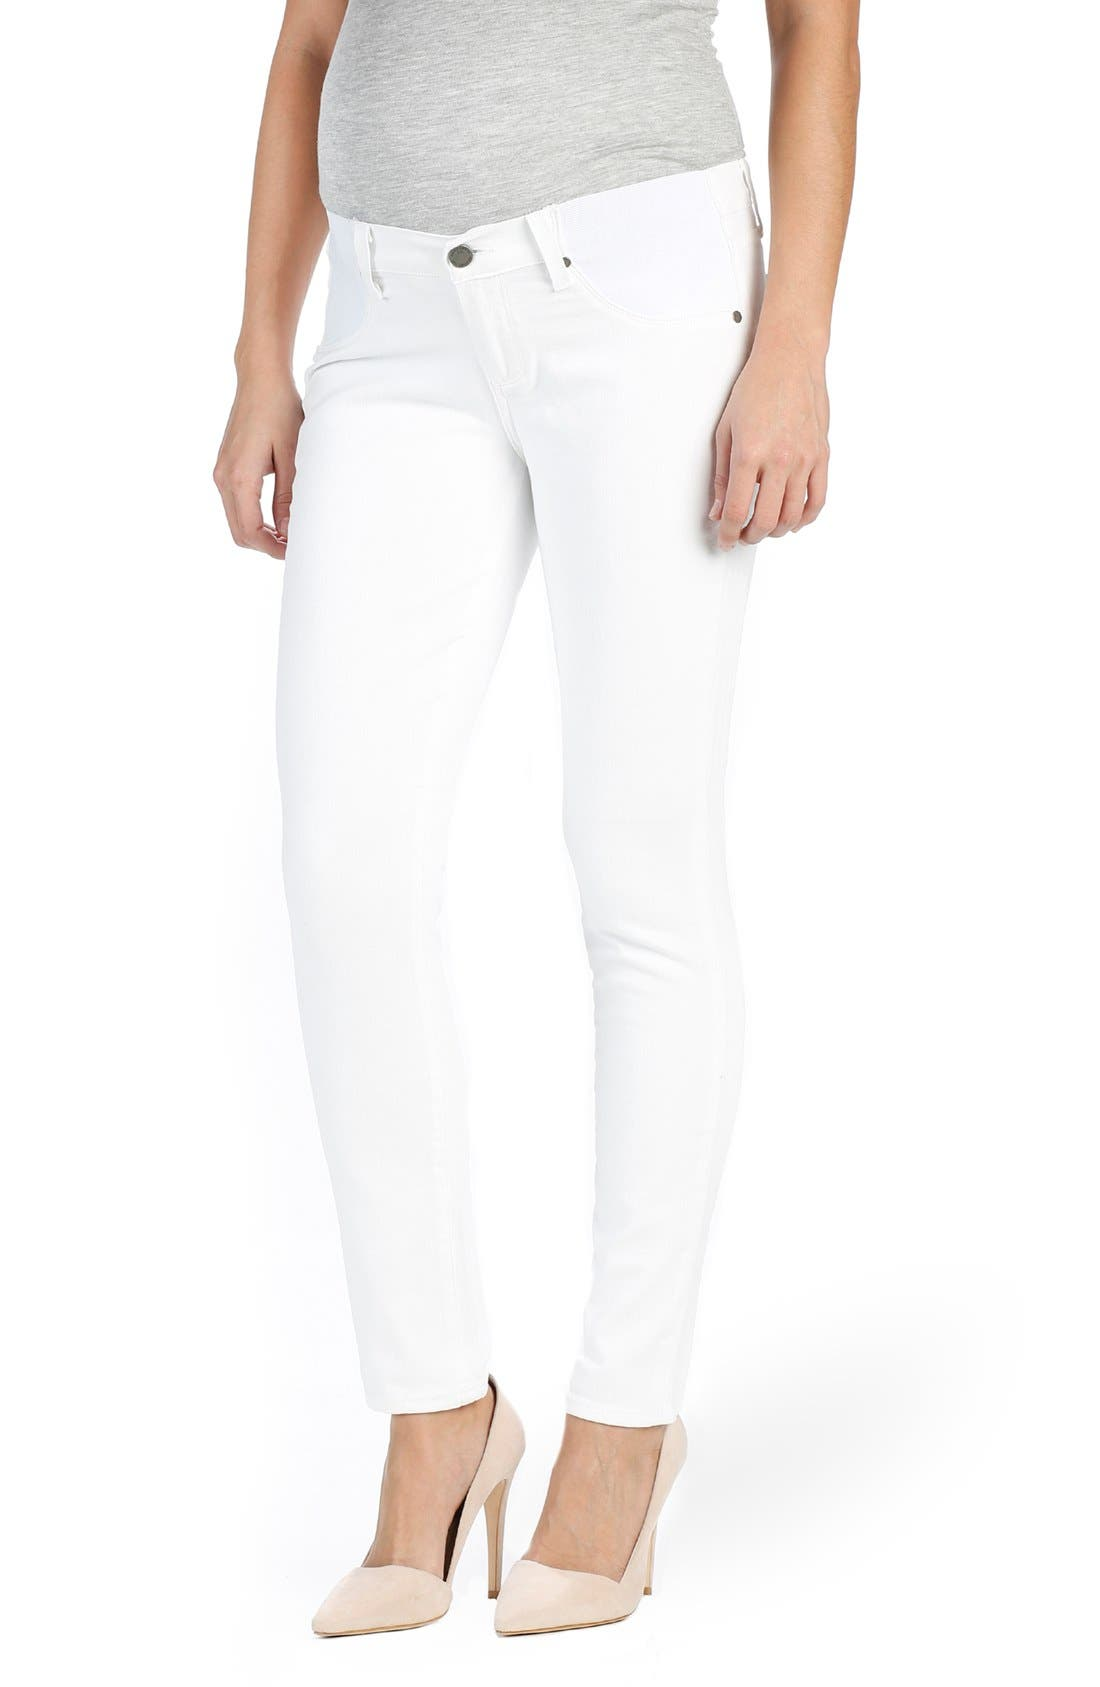 PAIGE 'Skyline' Ankle Peg Skinny Maternity Jeans, Main, color, 101